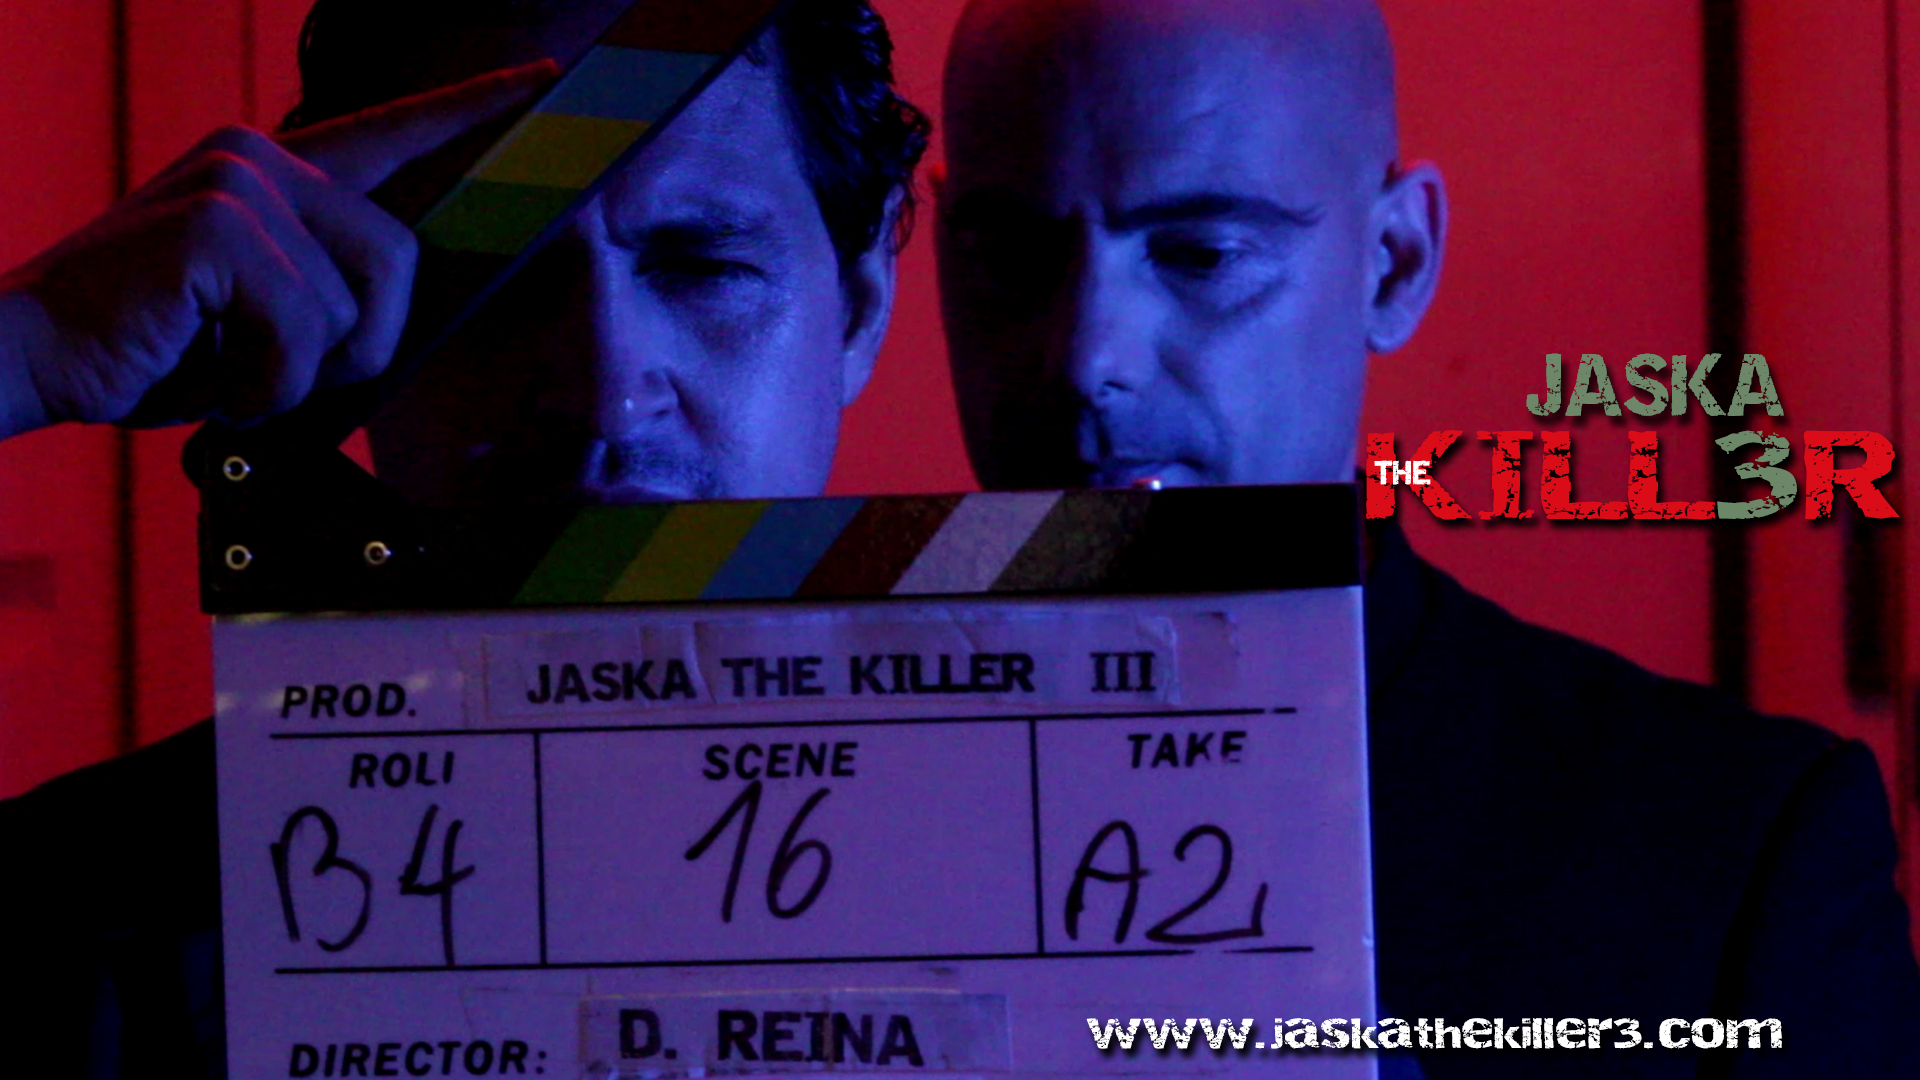 Jaska The Killer III - Darwin Reina